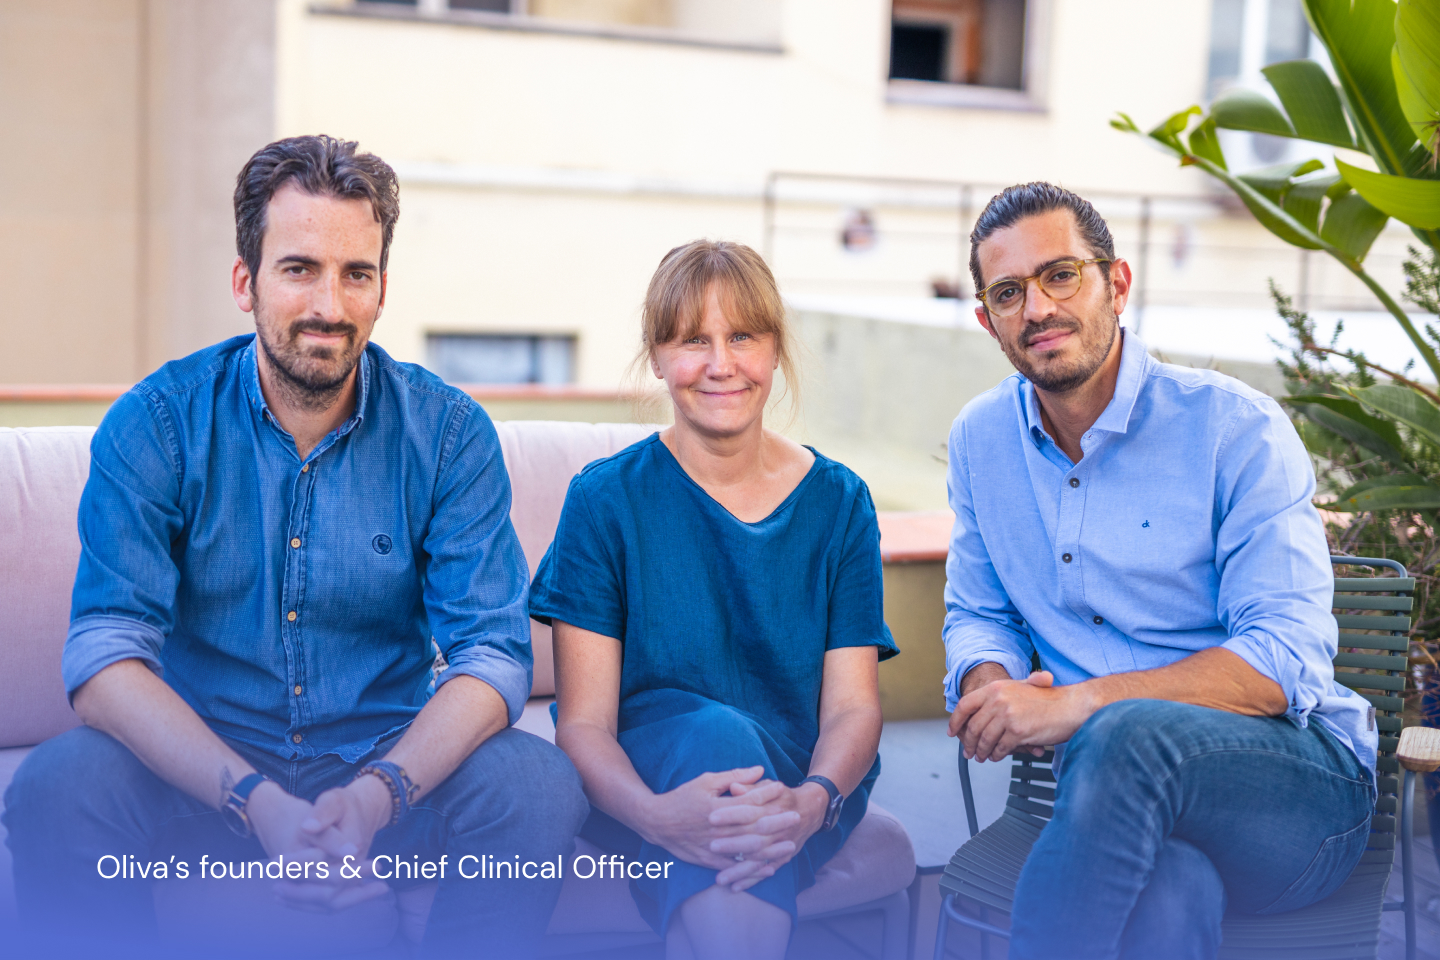 Landscape photo of Oliva's founders Javi and Sancar, and Clinical Office Dr. Sarah Bateau